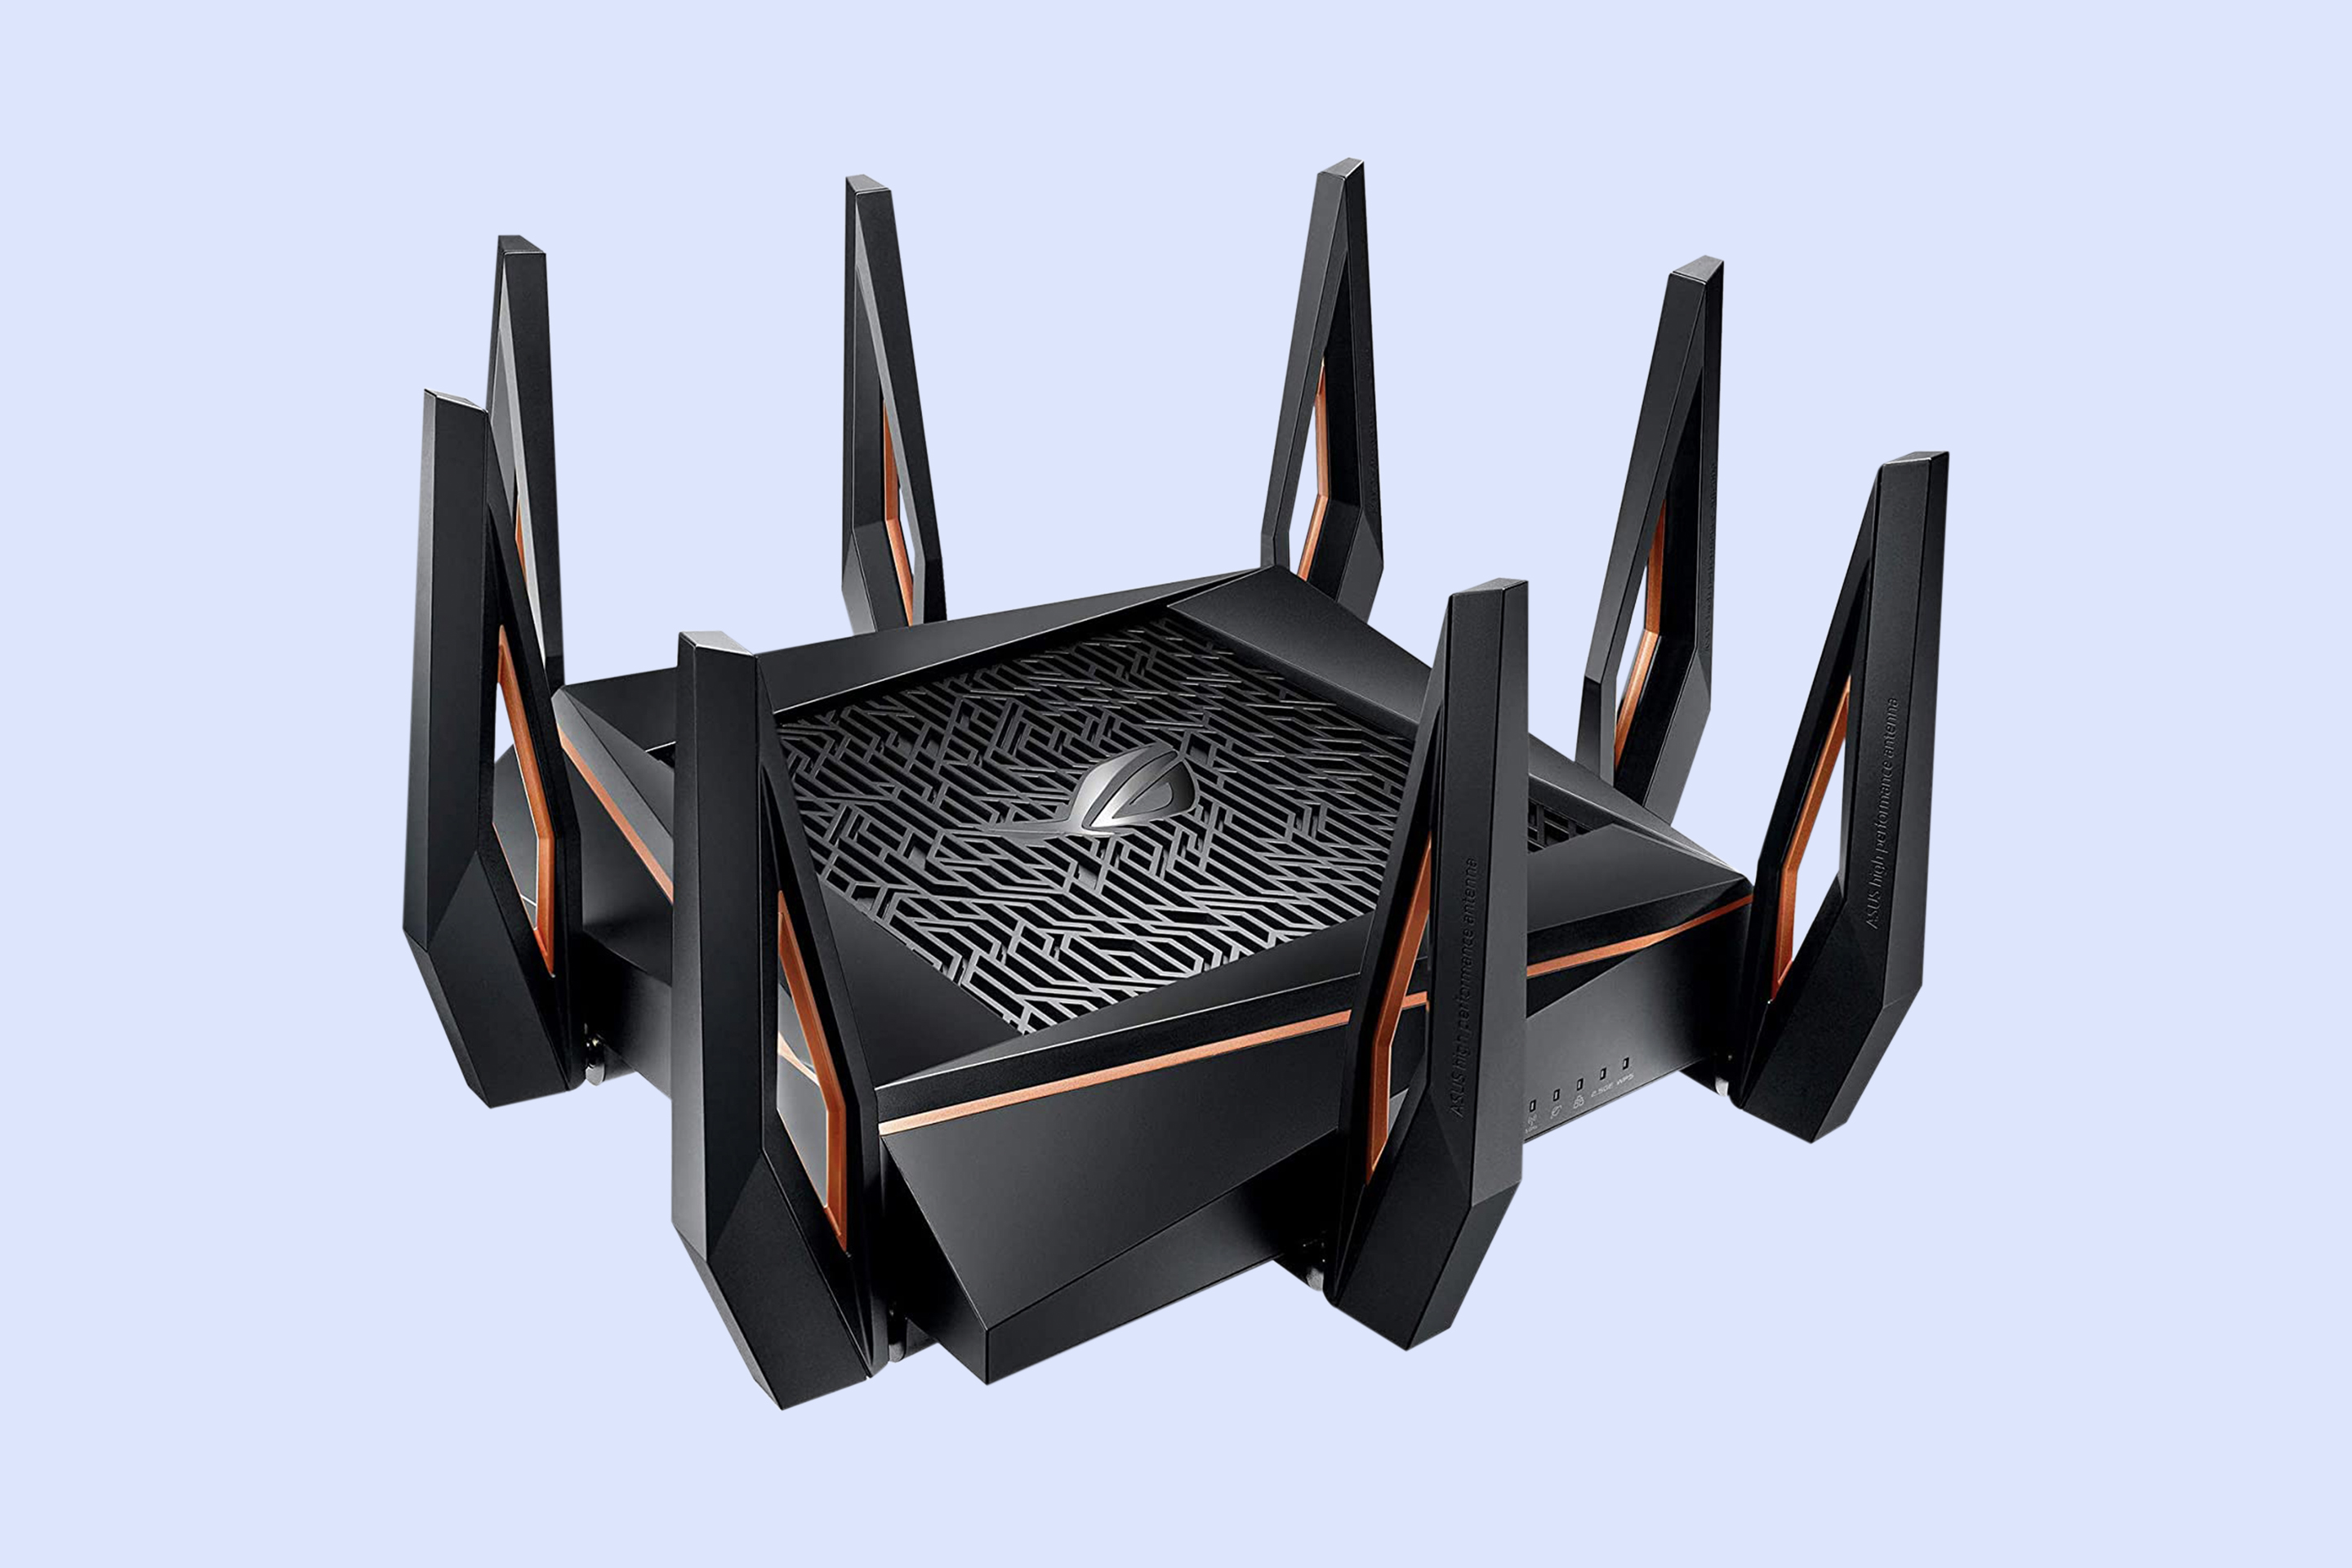 ASUS ROG Rapture WiFi 6 Gaming Router GT AX11000